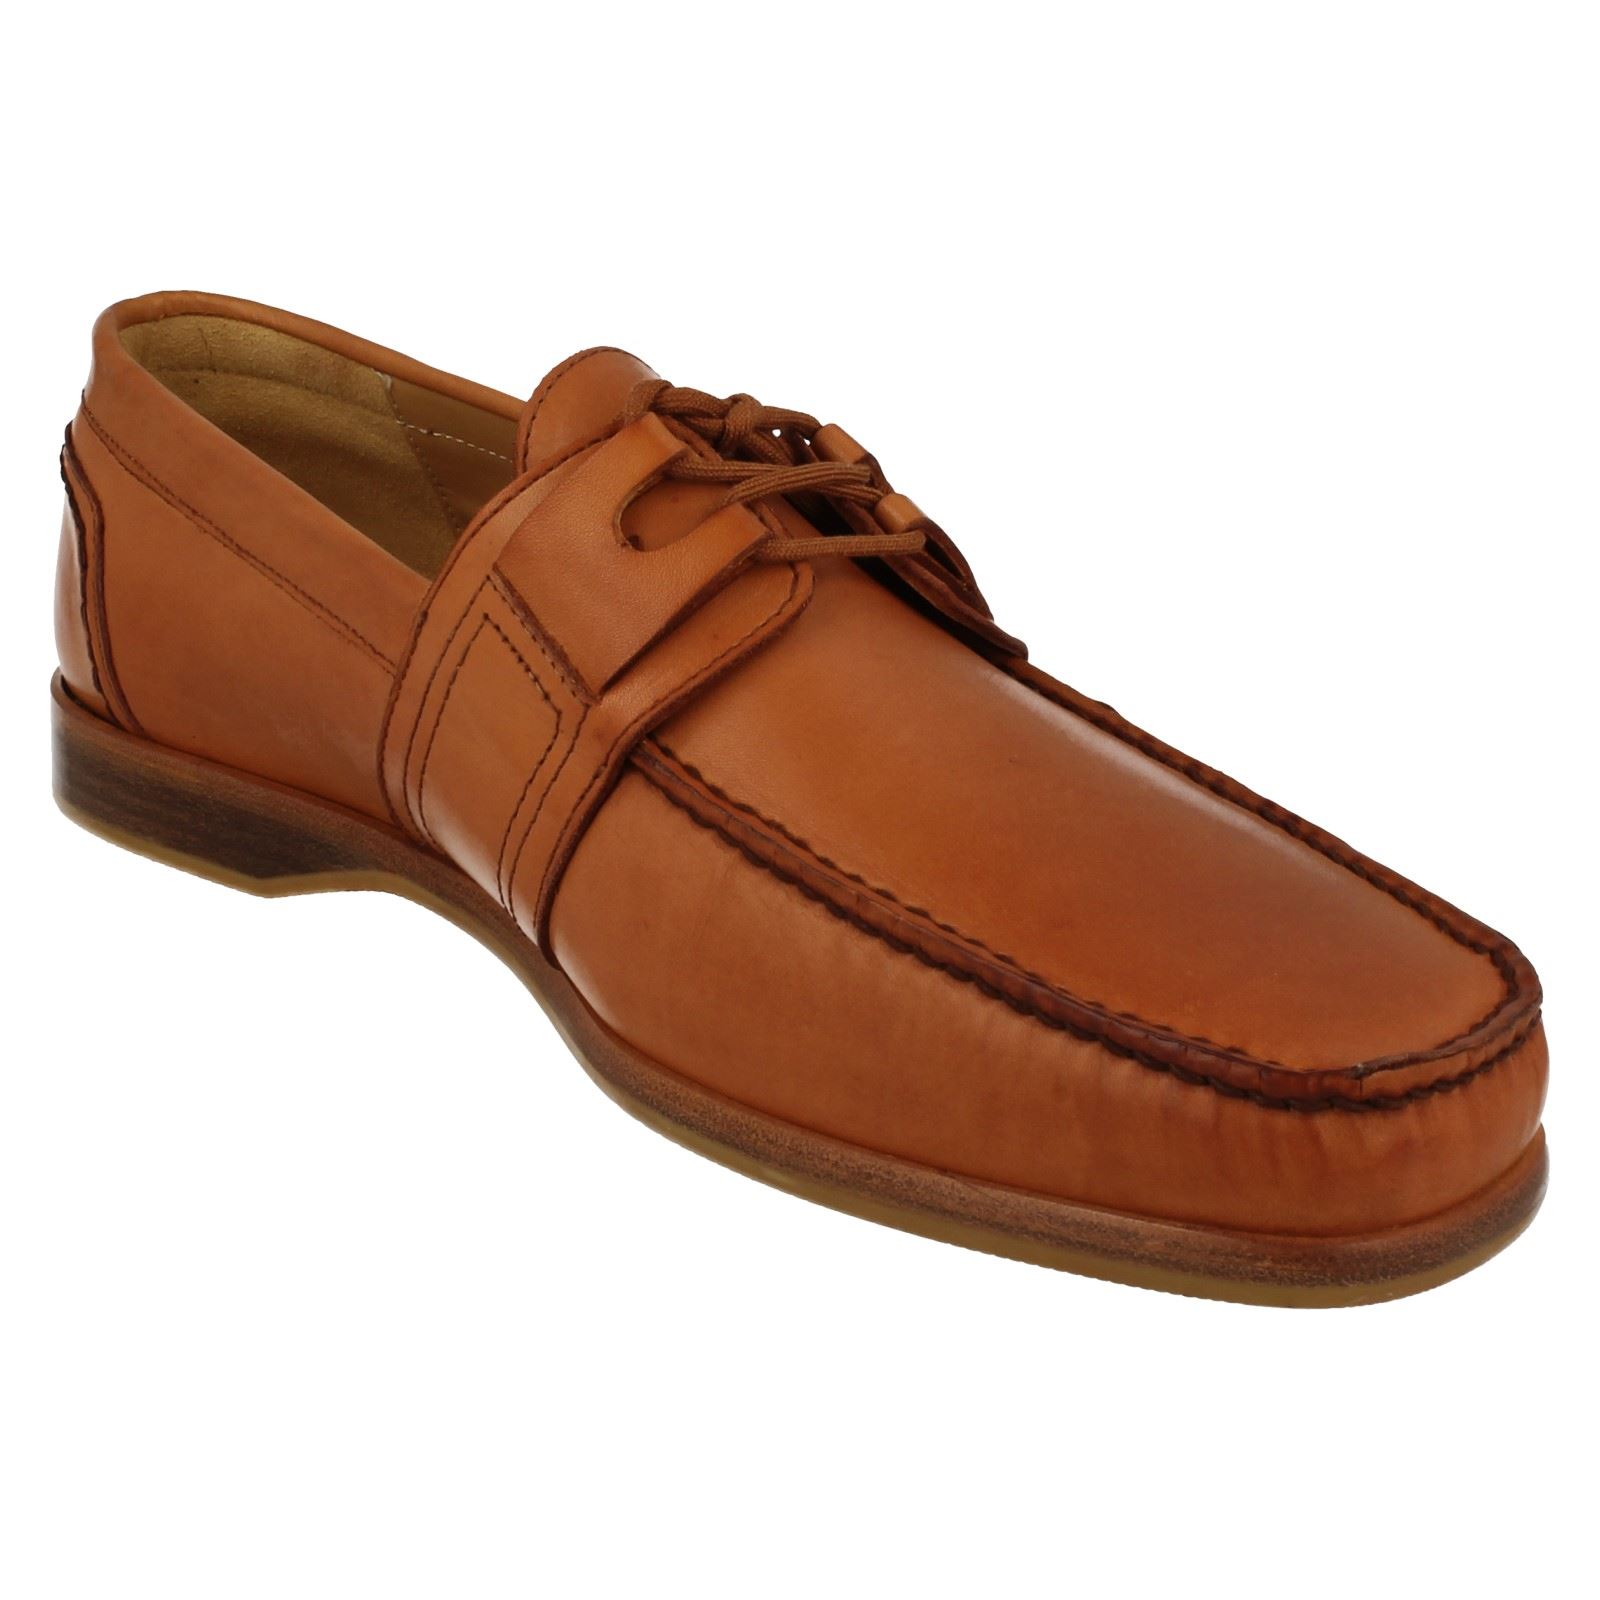 Herren Grenson Casual Casual Casual Moccasin Schuhes Swansea 009db4